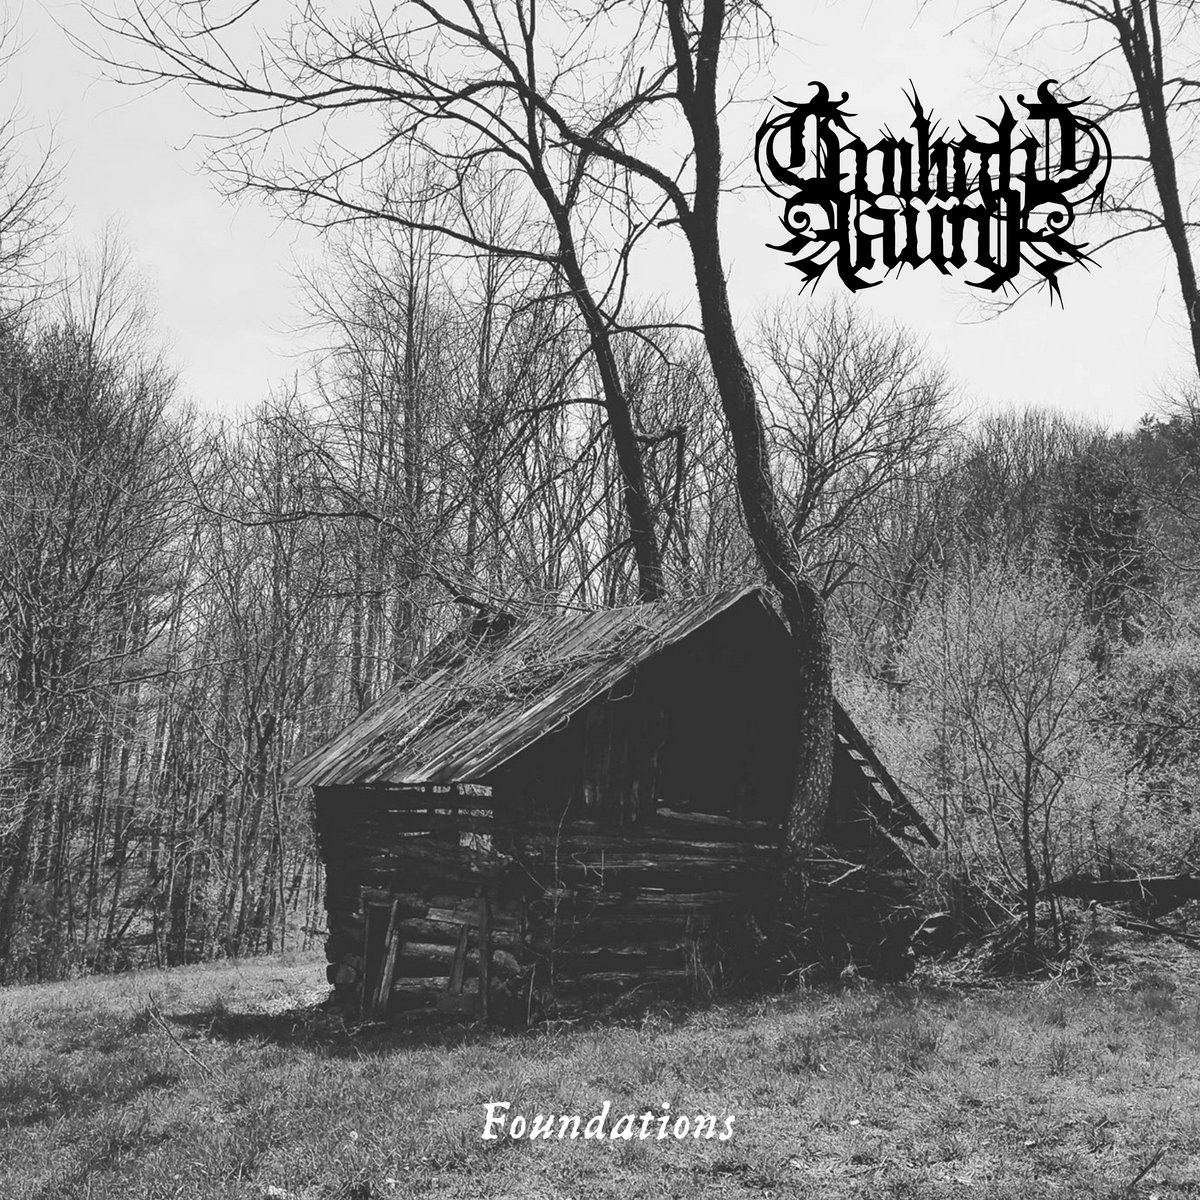 """Drum roll please. My number one #Underground and #Independent #HeavyMetal album of 2020 is: TWILIGHT FAUNA """"Foundations"""" on 12"""" vinyl LP! This Tennessee band mixes atmospheric #BlackMetal with elements of #NeoFolk and #TraditionalCountryMusic! Amazing! #BestOf2020 #MusicIsLife 🤘"""